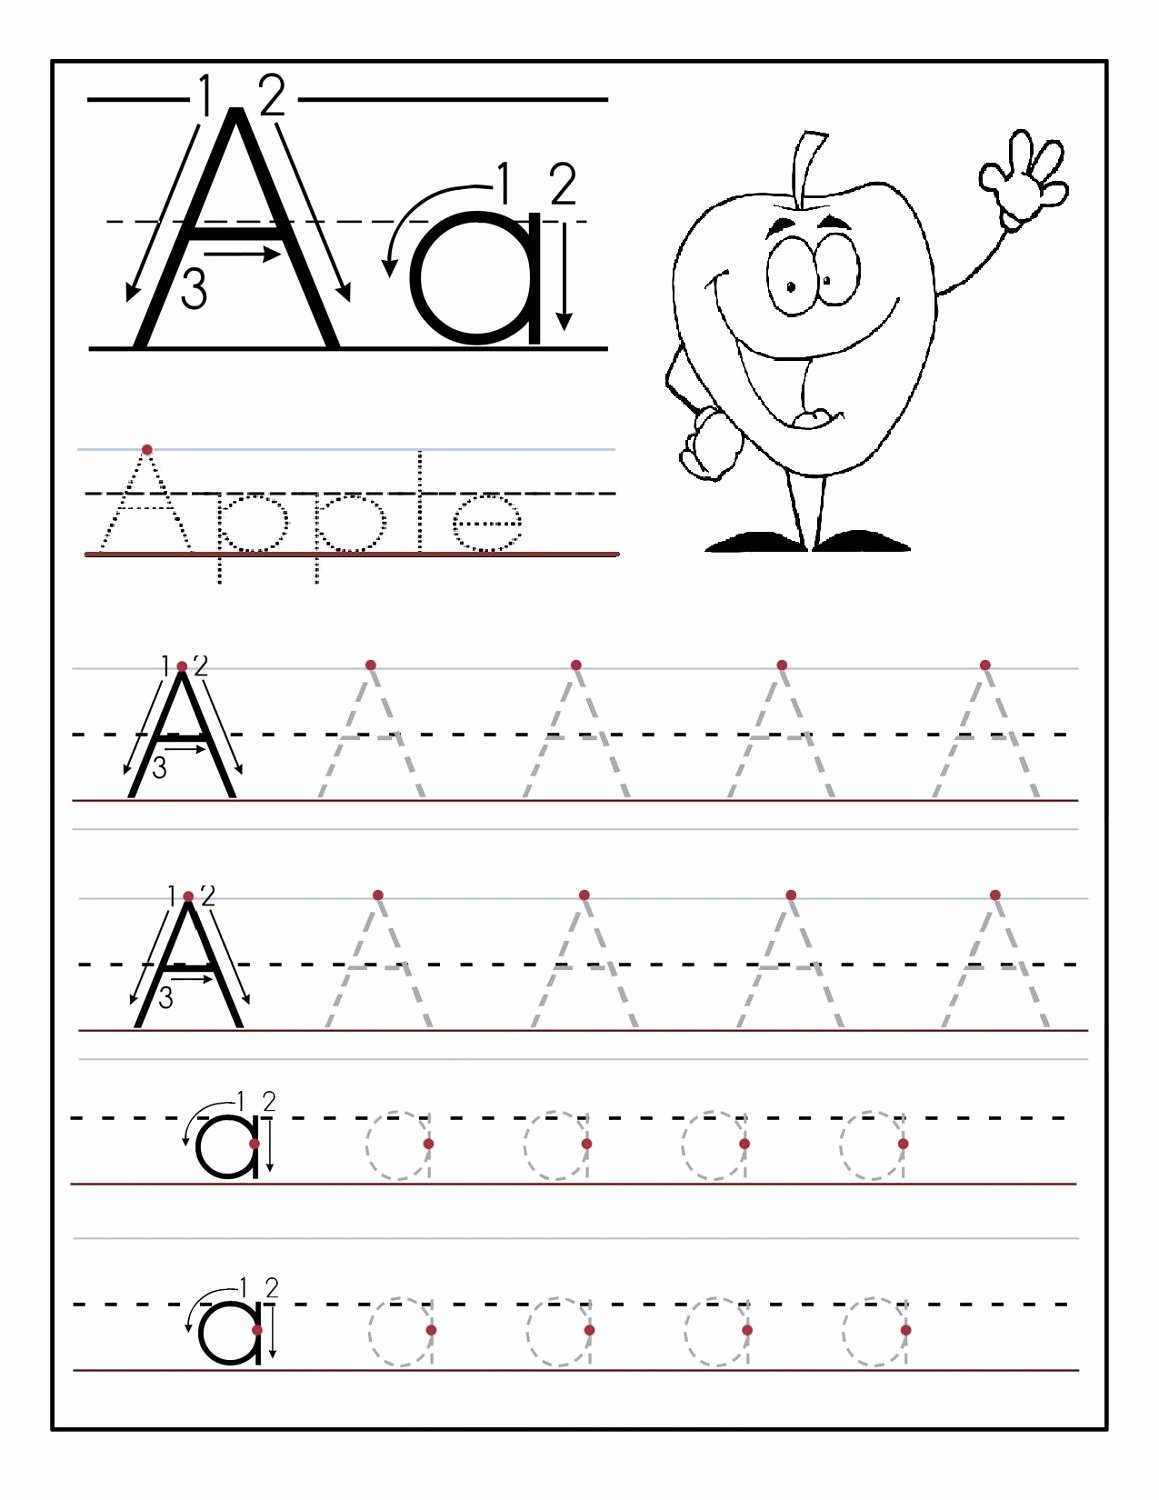 Printable Letter A Worksheets for Preschoolers Inspirational Trace Letter A Sheets to Print